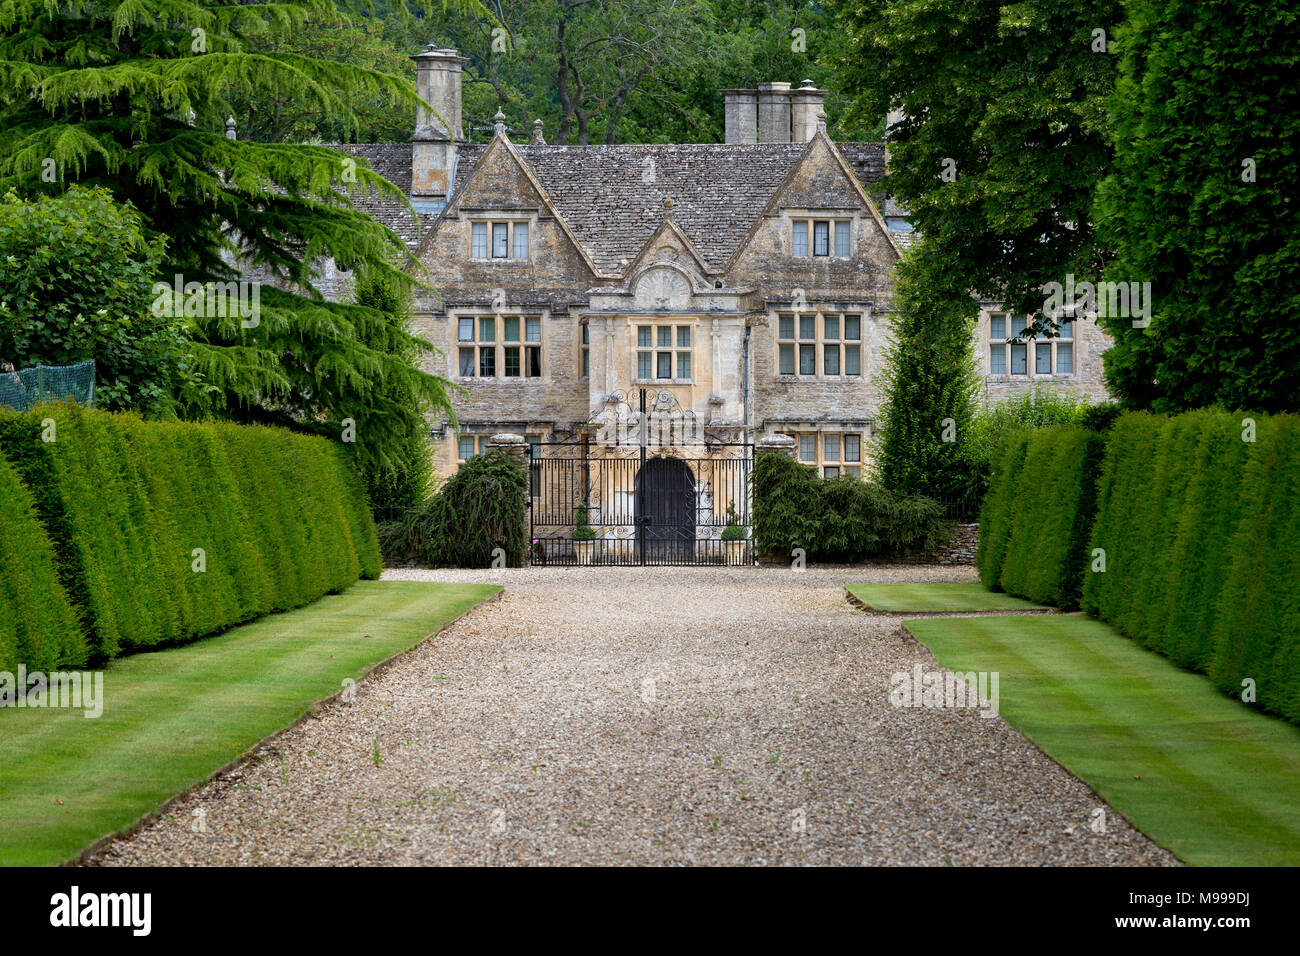 Upper Slaughter Manor House, the Cotswolds, Upper Slaughter, Gloucestershire, England - Stock Image